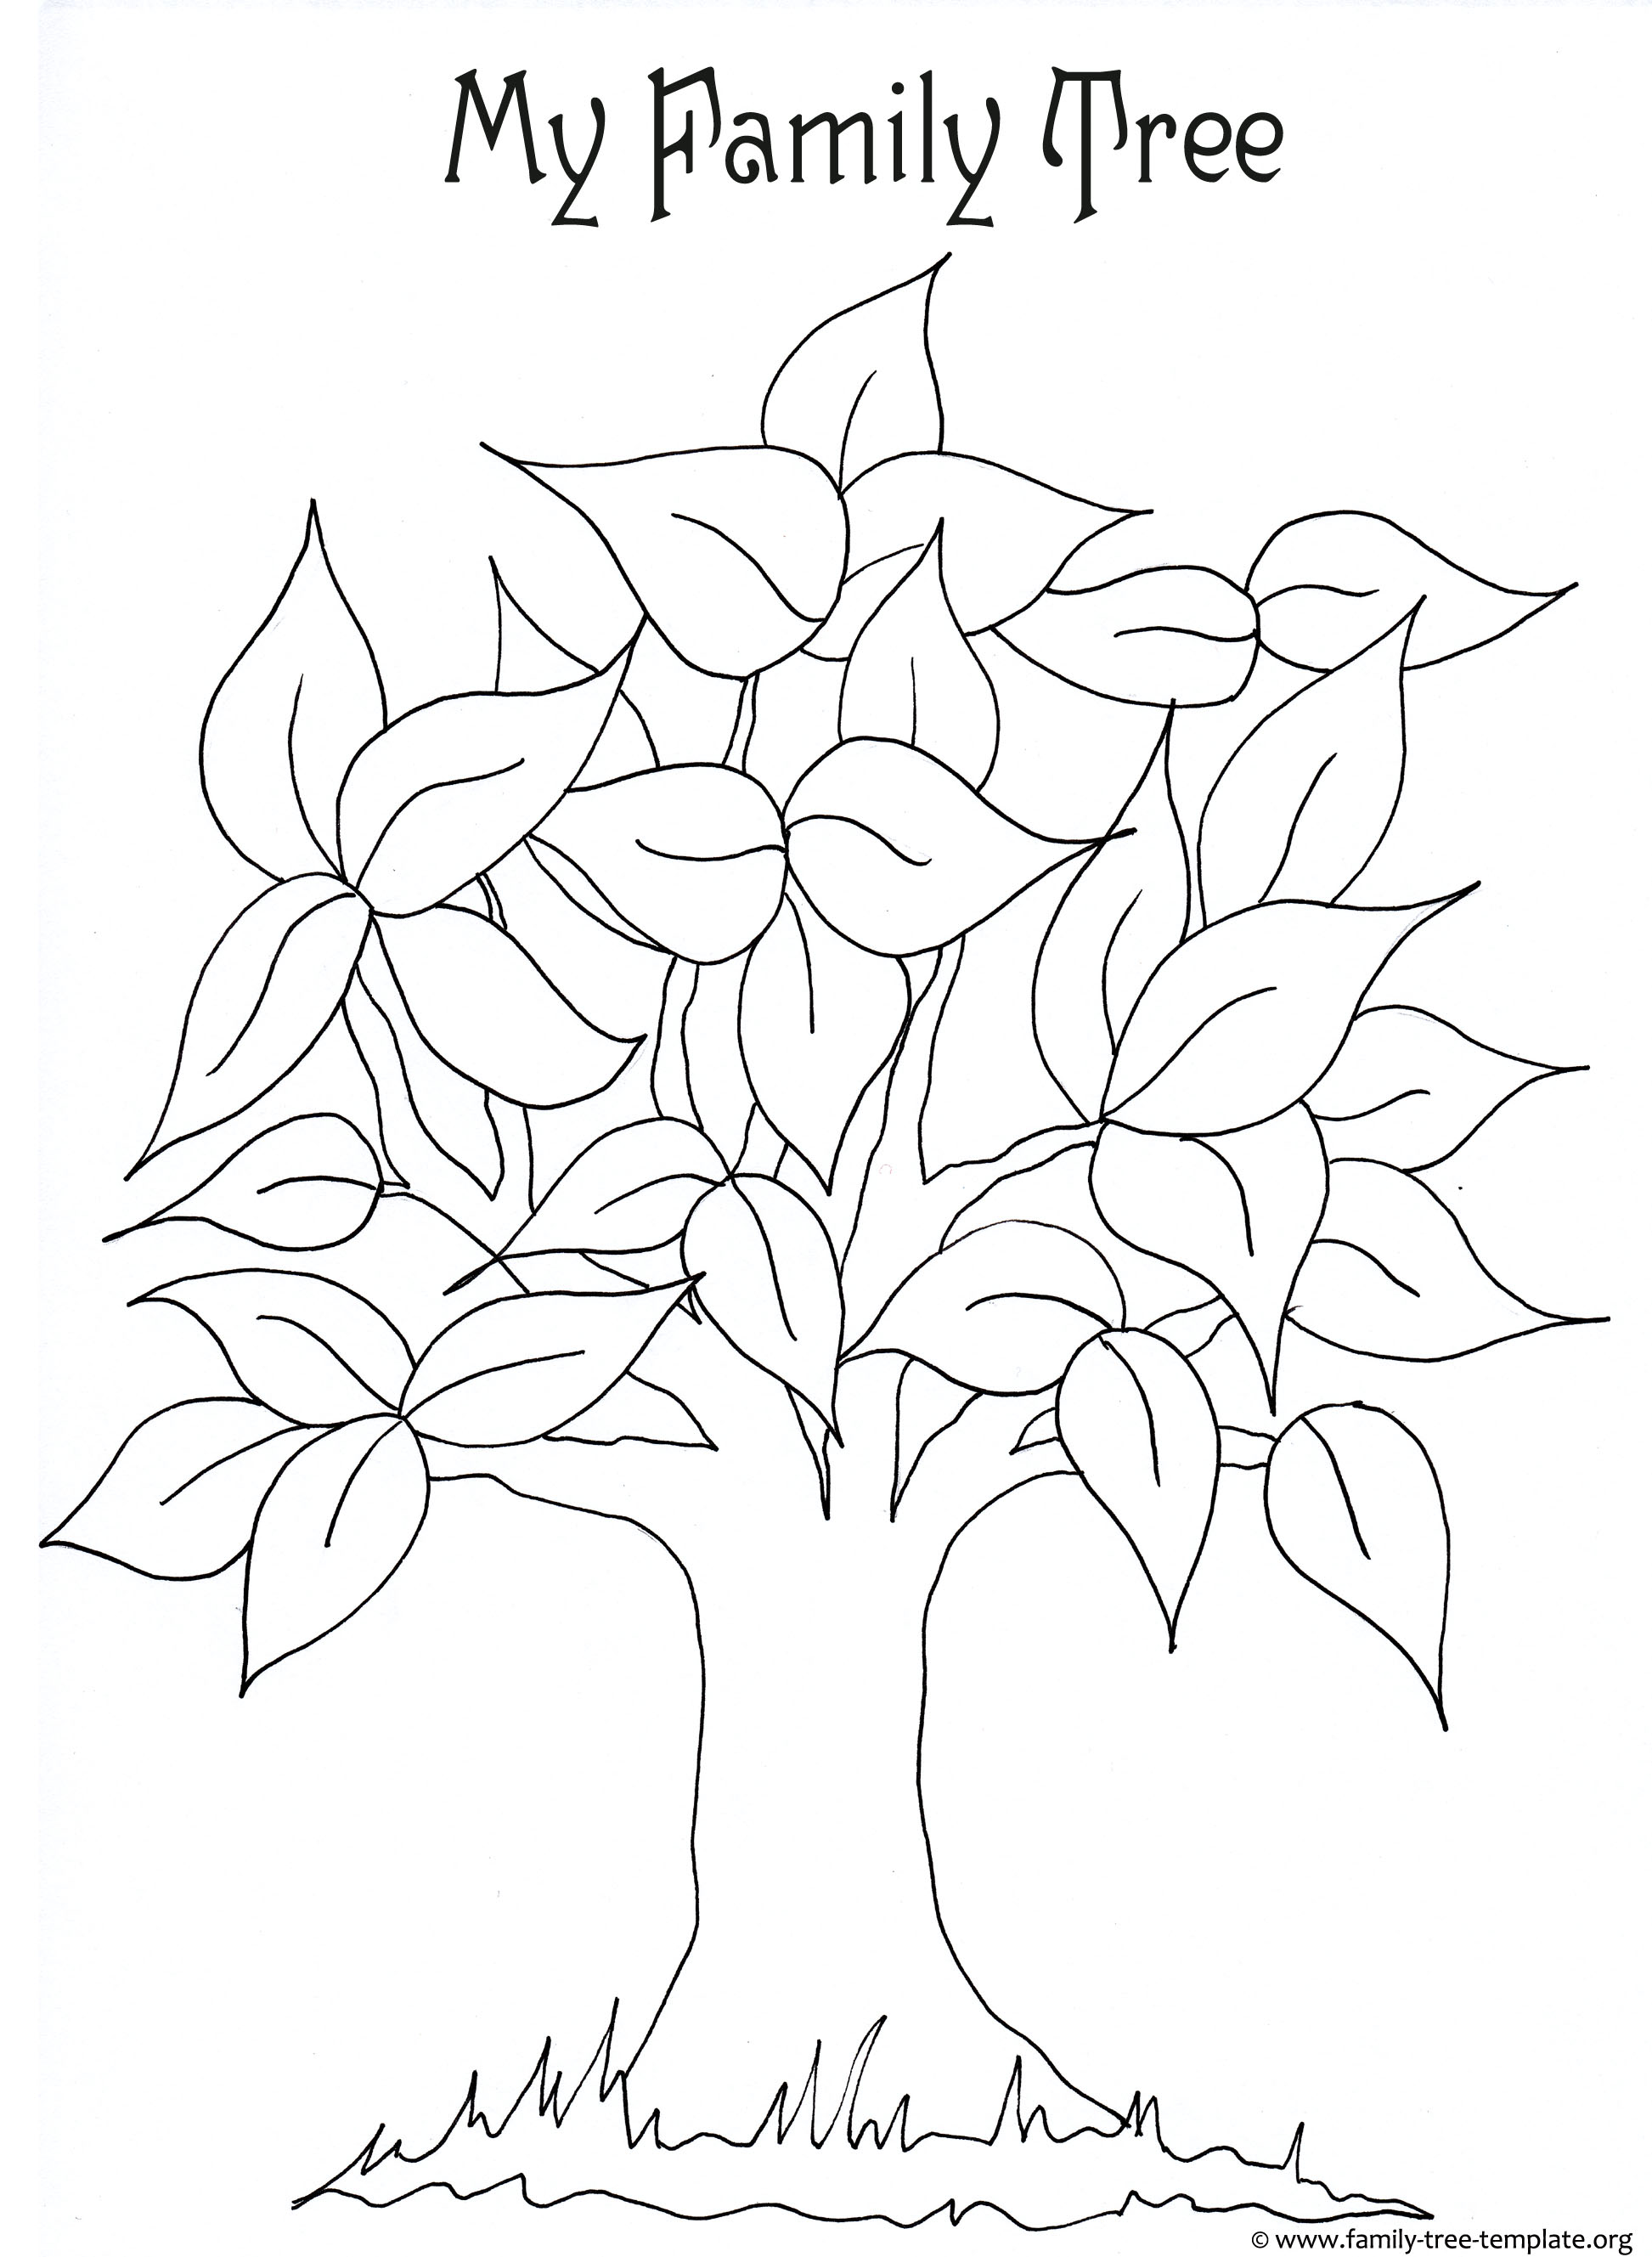 Blank Family Tree Coloring Pages Blank Tree Coloring Page